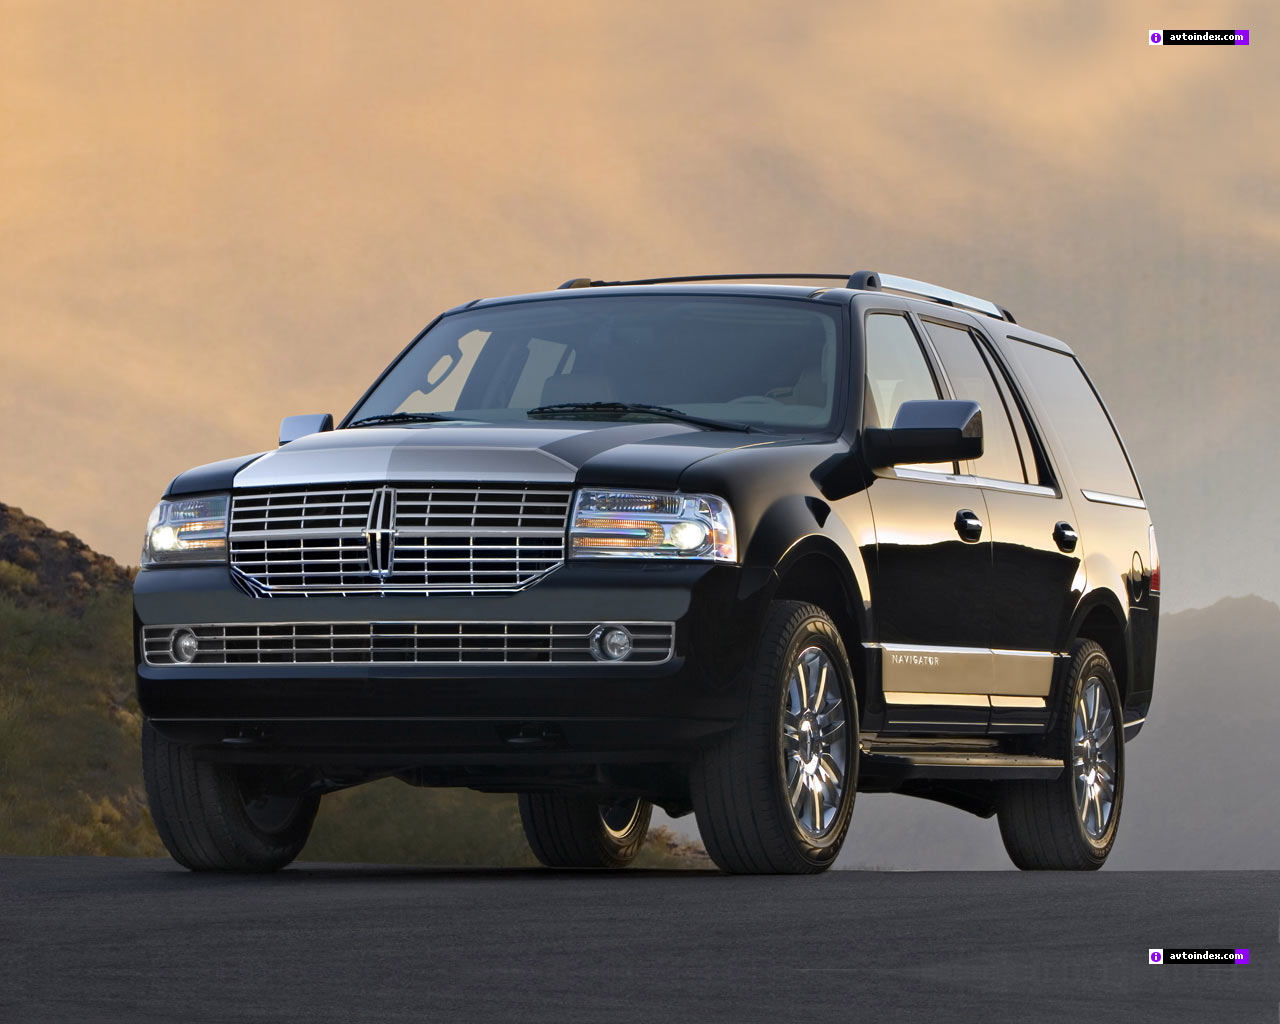 images s conceptcarz navigator view photo truck image com lincoln